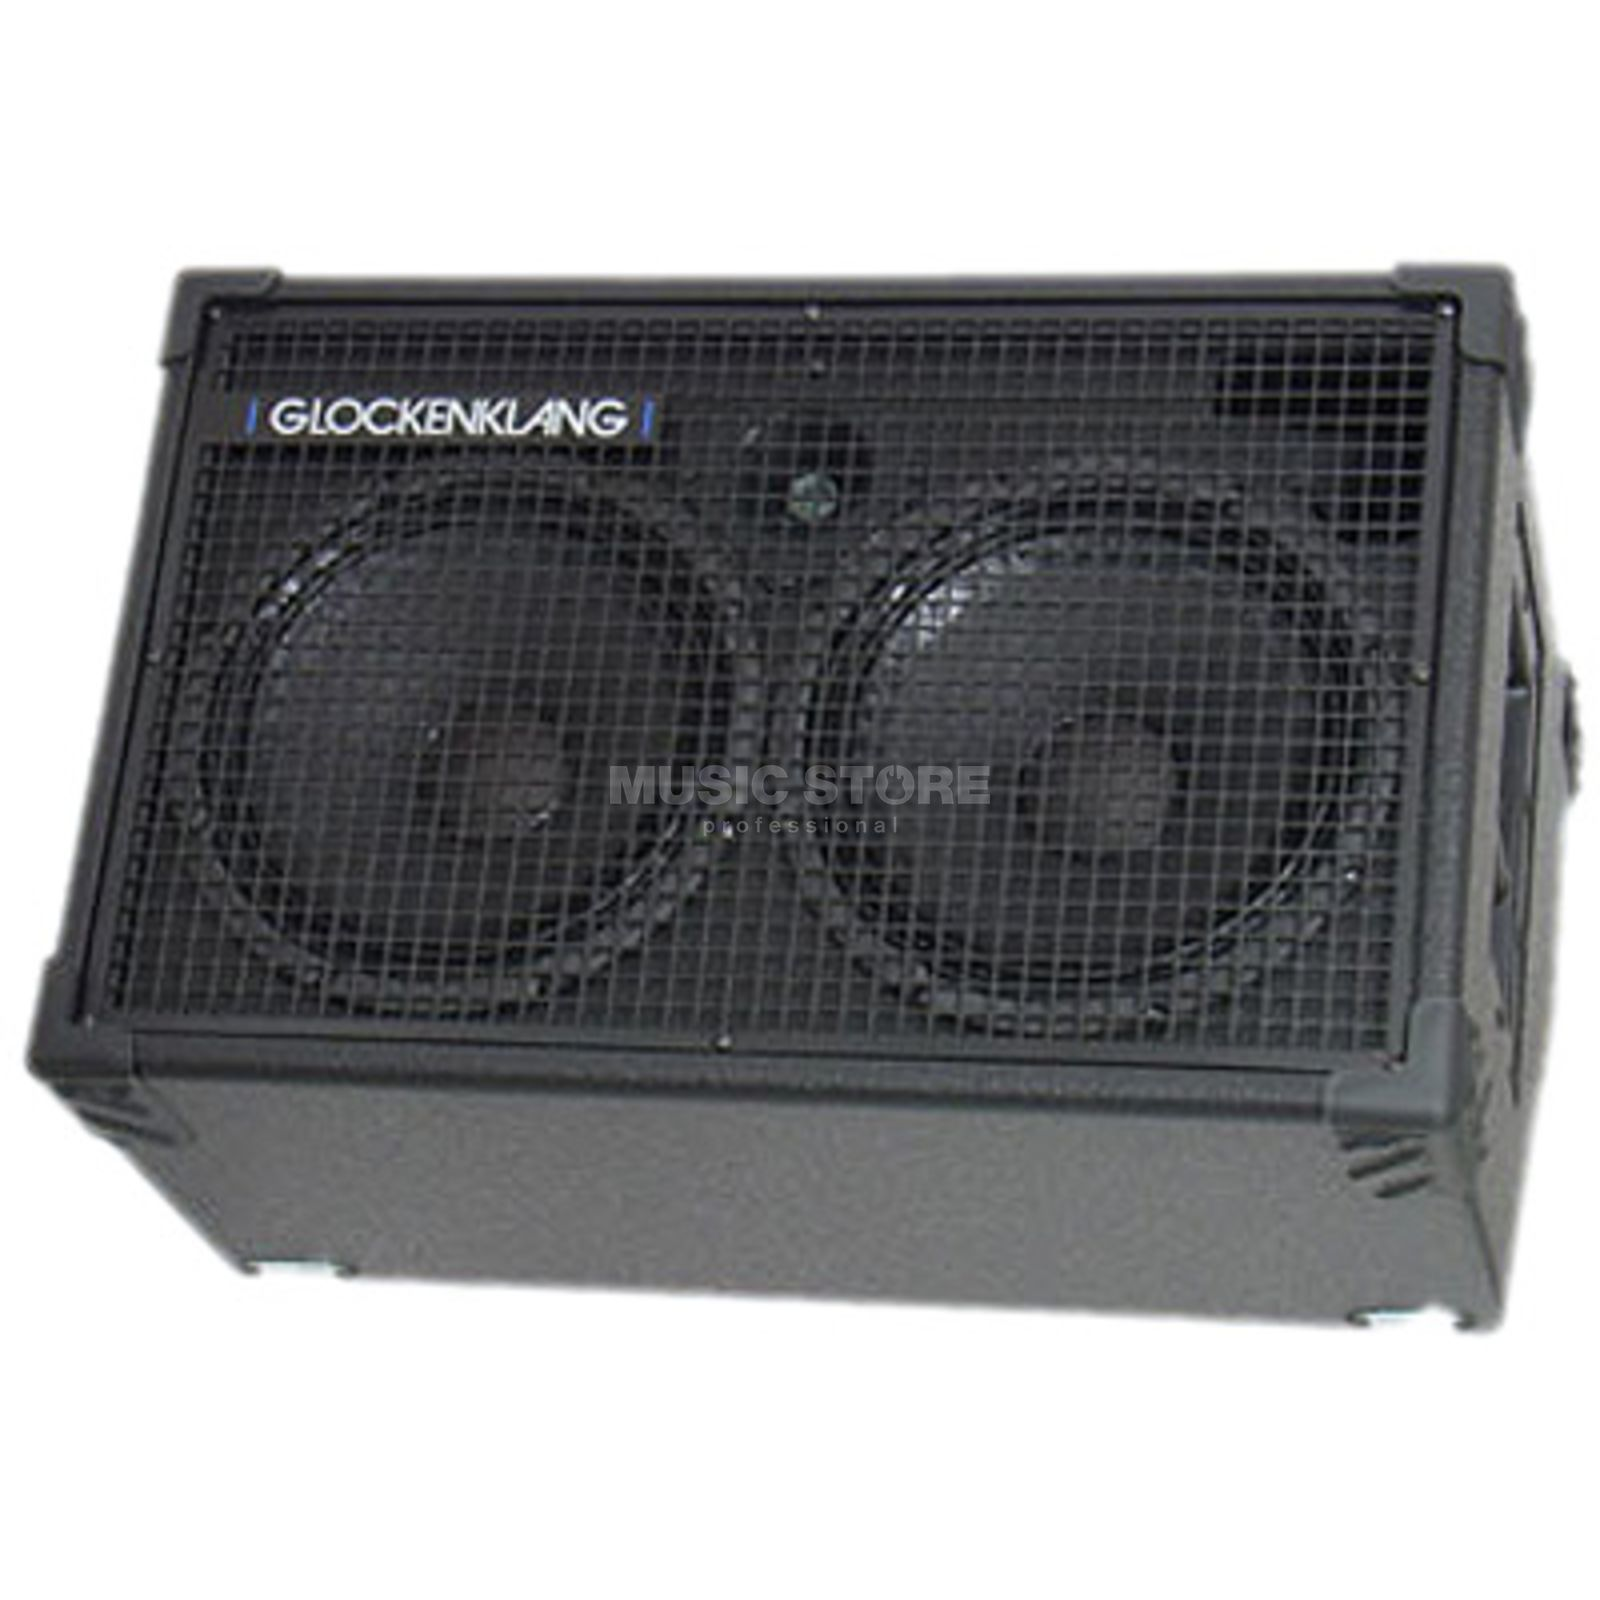 "Glockenklang Duo Wedge Box 8 Ohm 400 Watt 2x10"" Speaker +Horn Zdjęcie produktu"